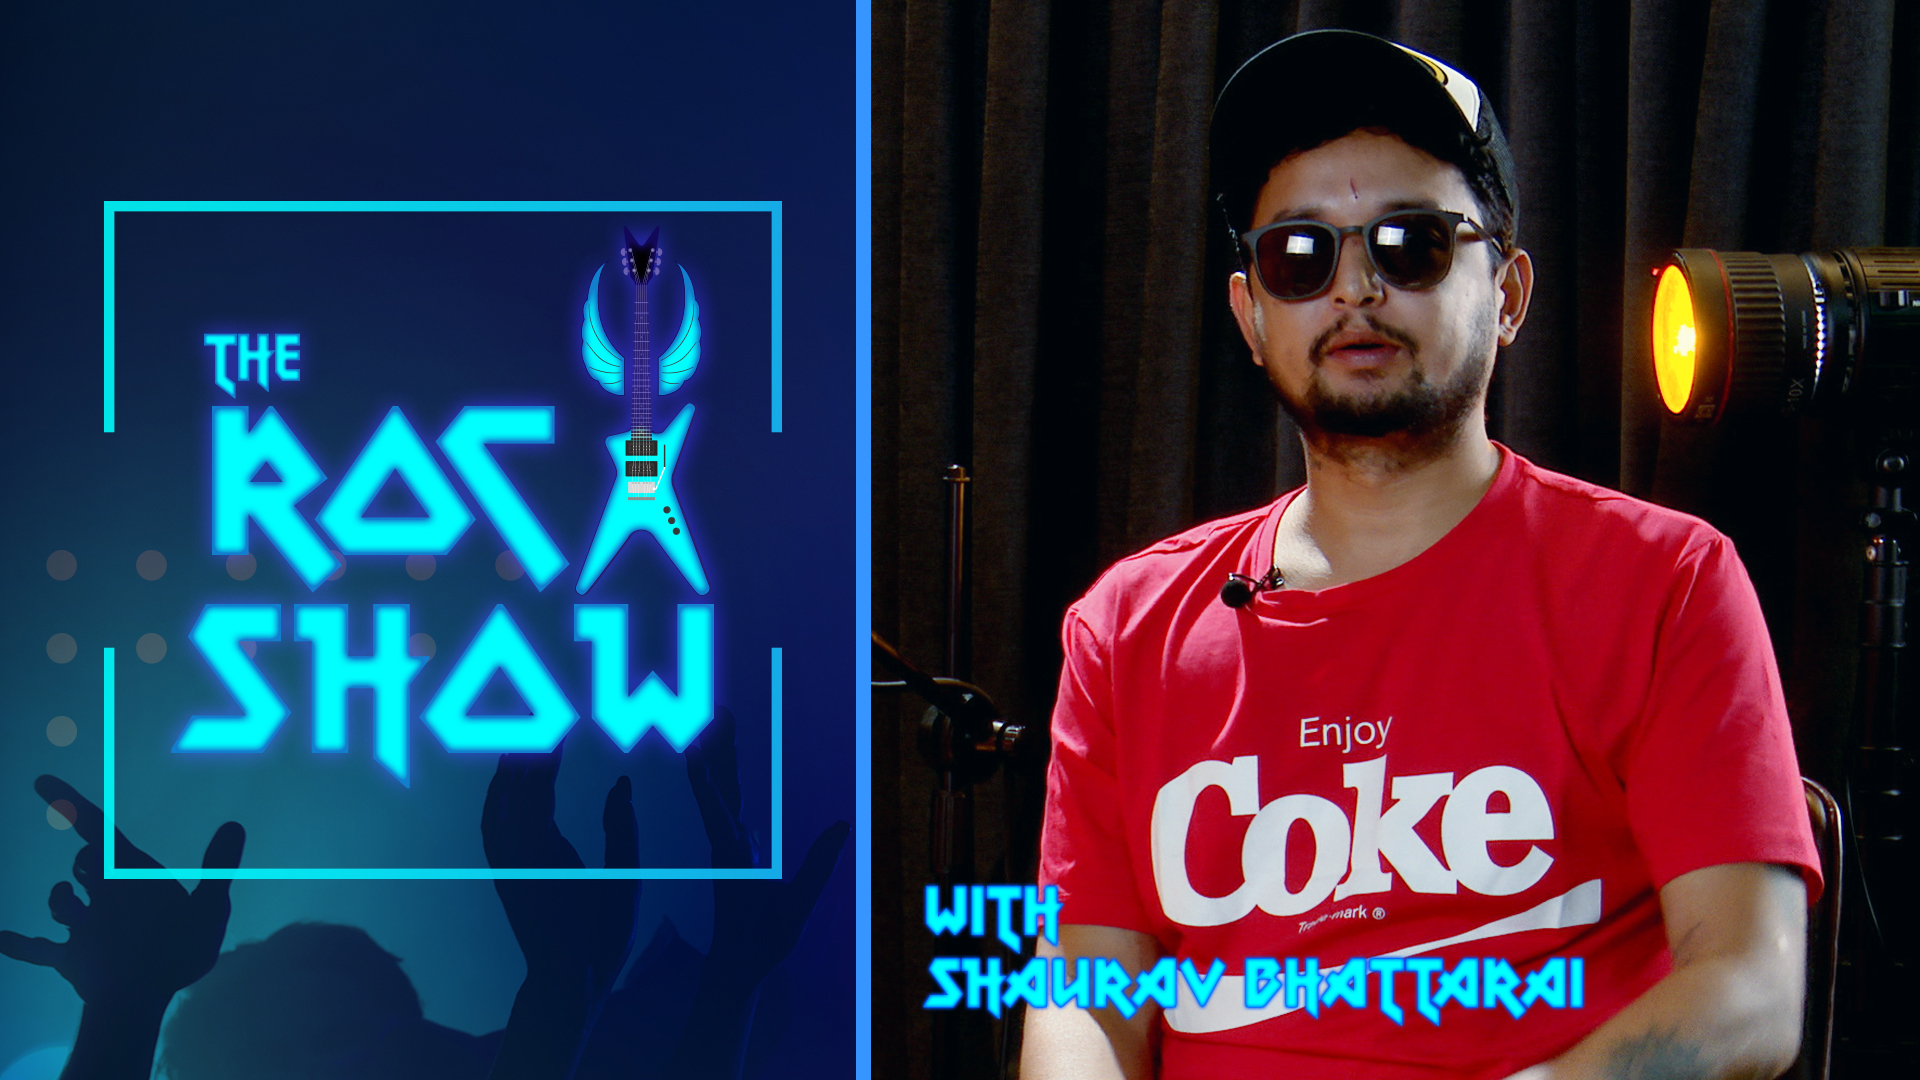 SHAURAV BHATTAARAI | Rock heartbeat of the east | The Rock Show - Abhishek S. Mishra